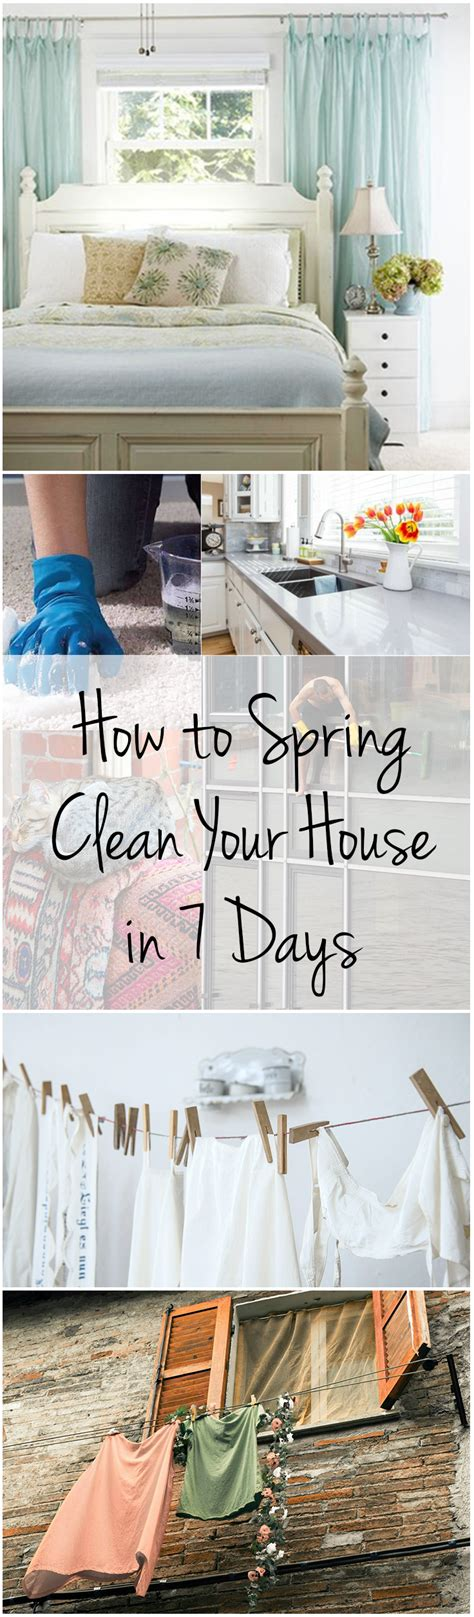 how to house your in 7 days how to quot clean quot your house in 7 days wrapped in rust